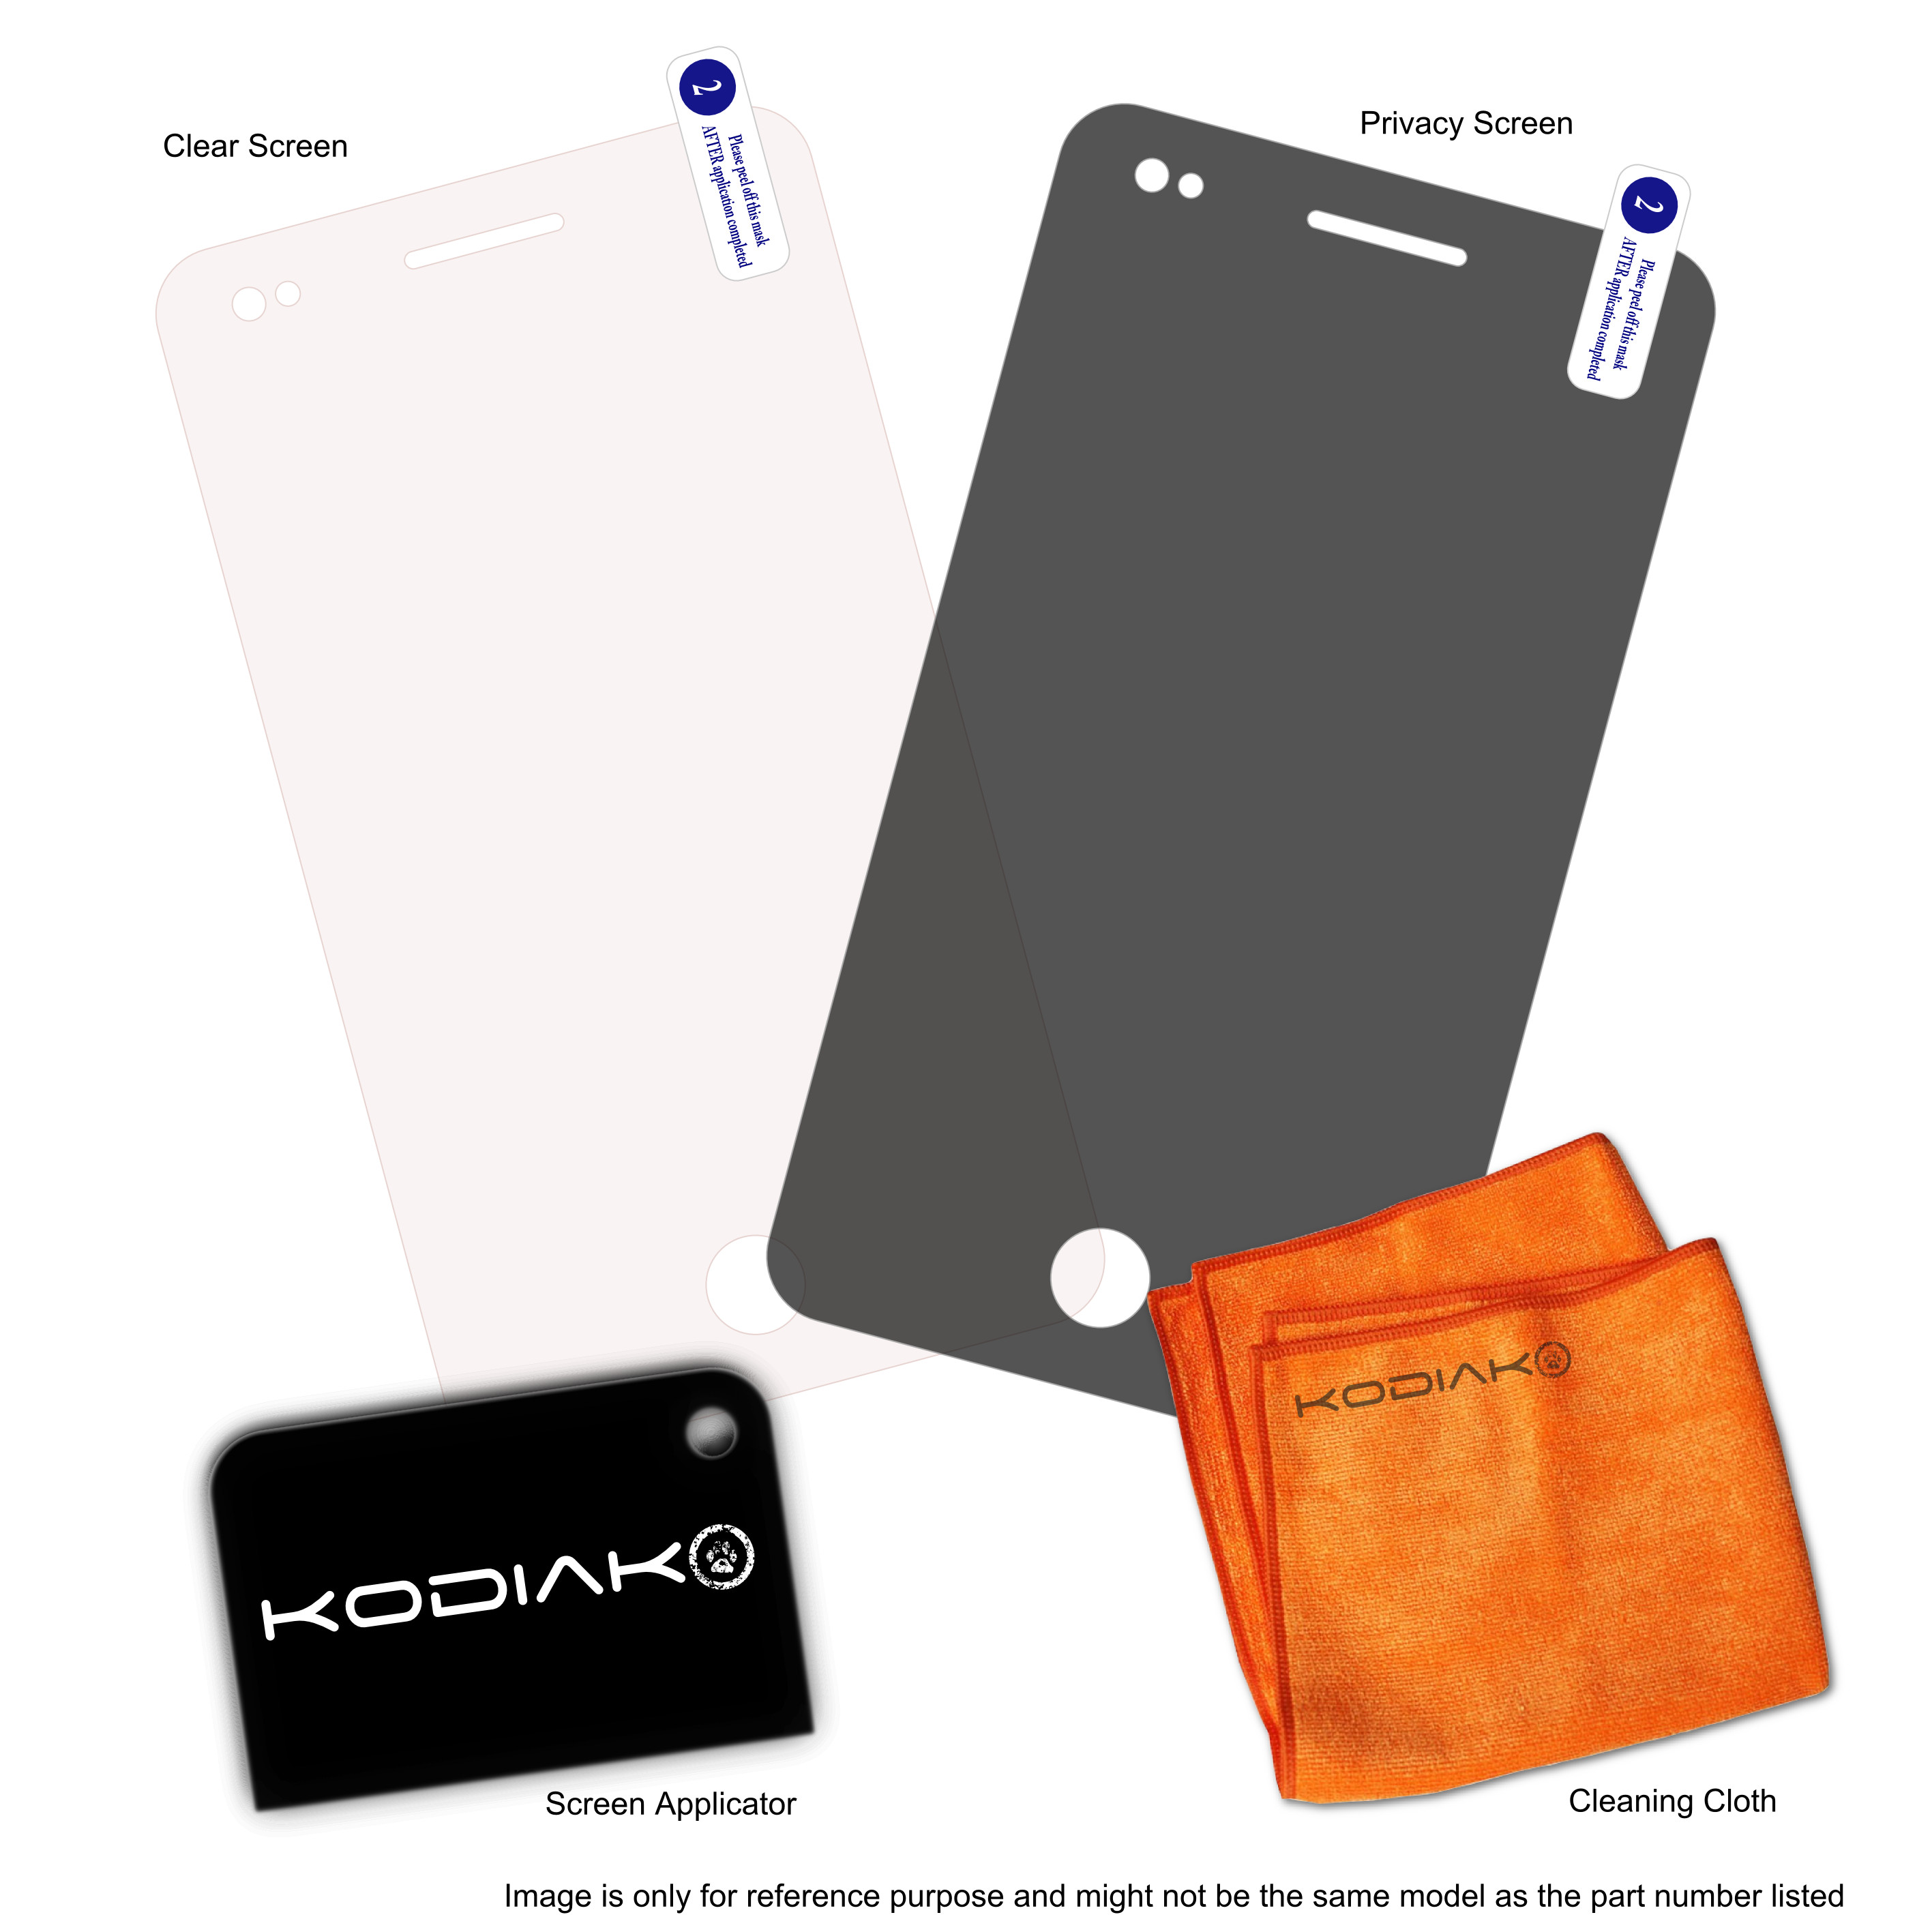 Original Kodiak Screen Protector Sony Ericsson Xperia X8 iProtect 2-Package (Clear + Privacy)